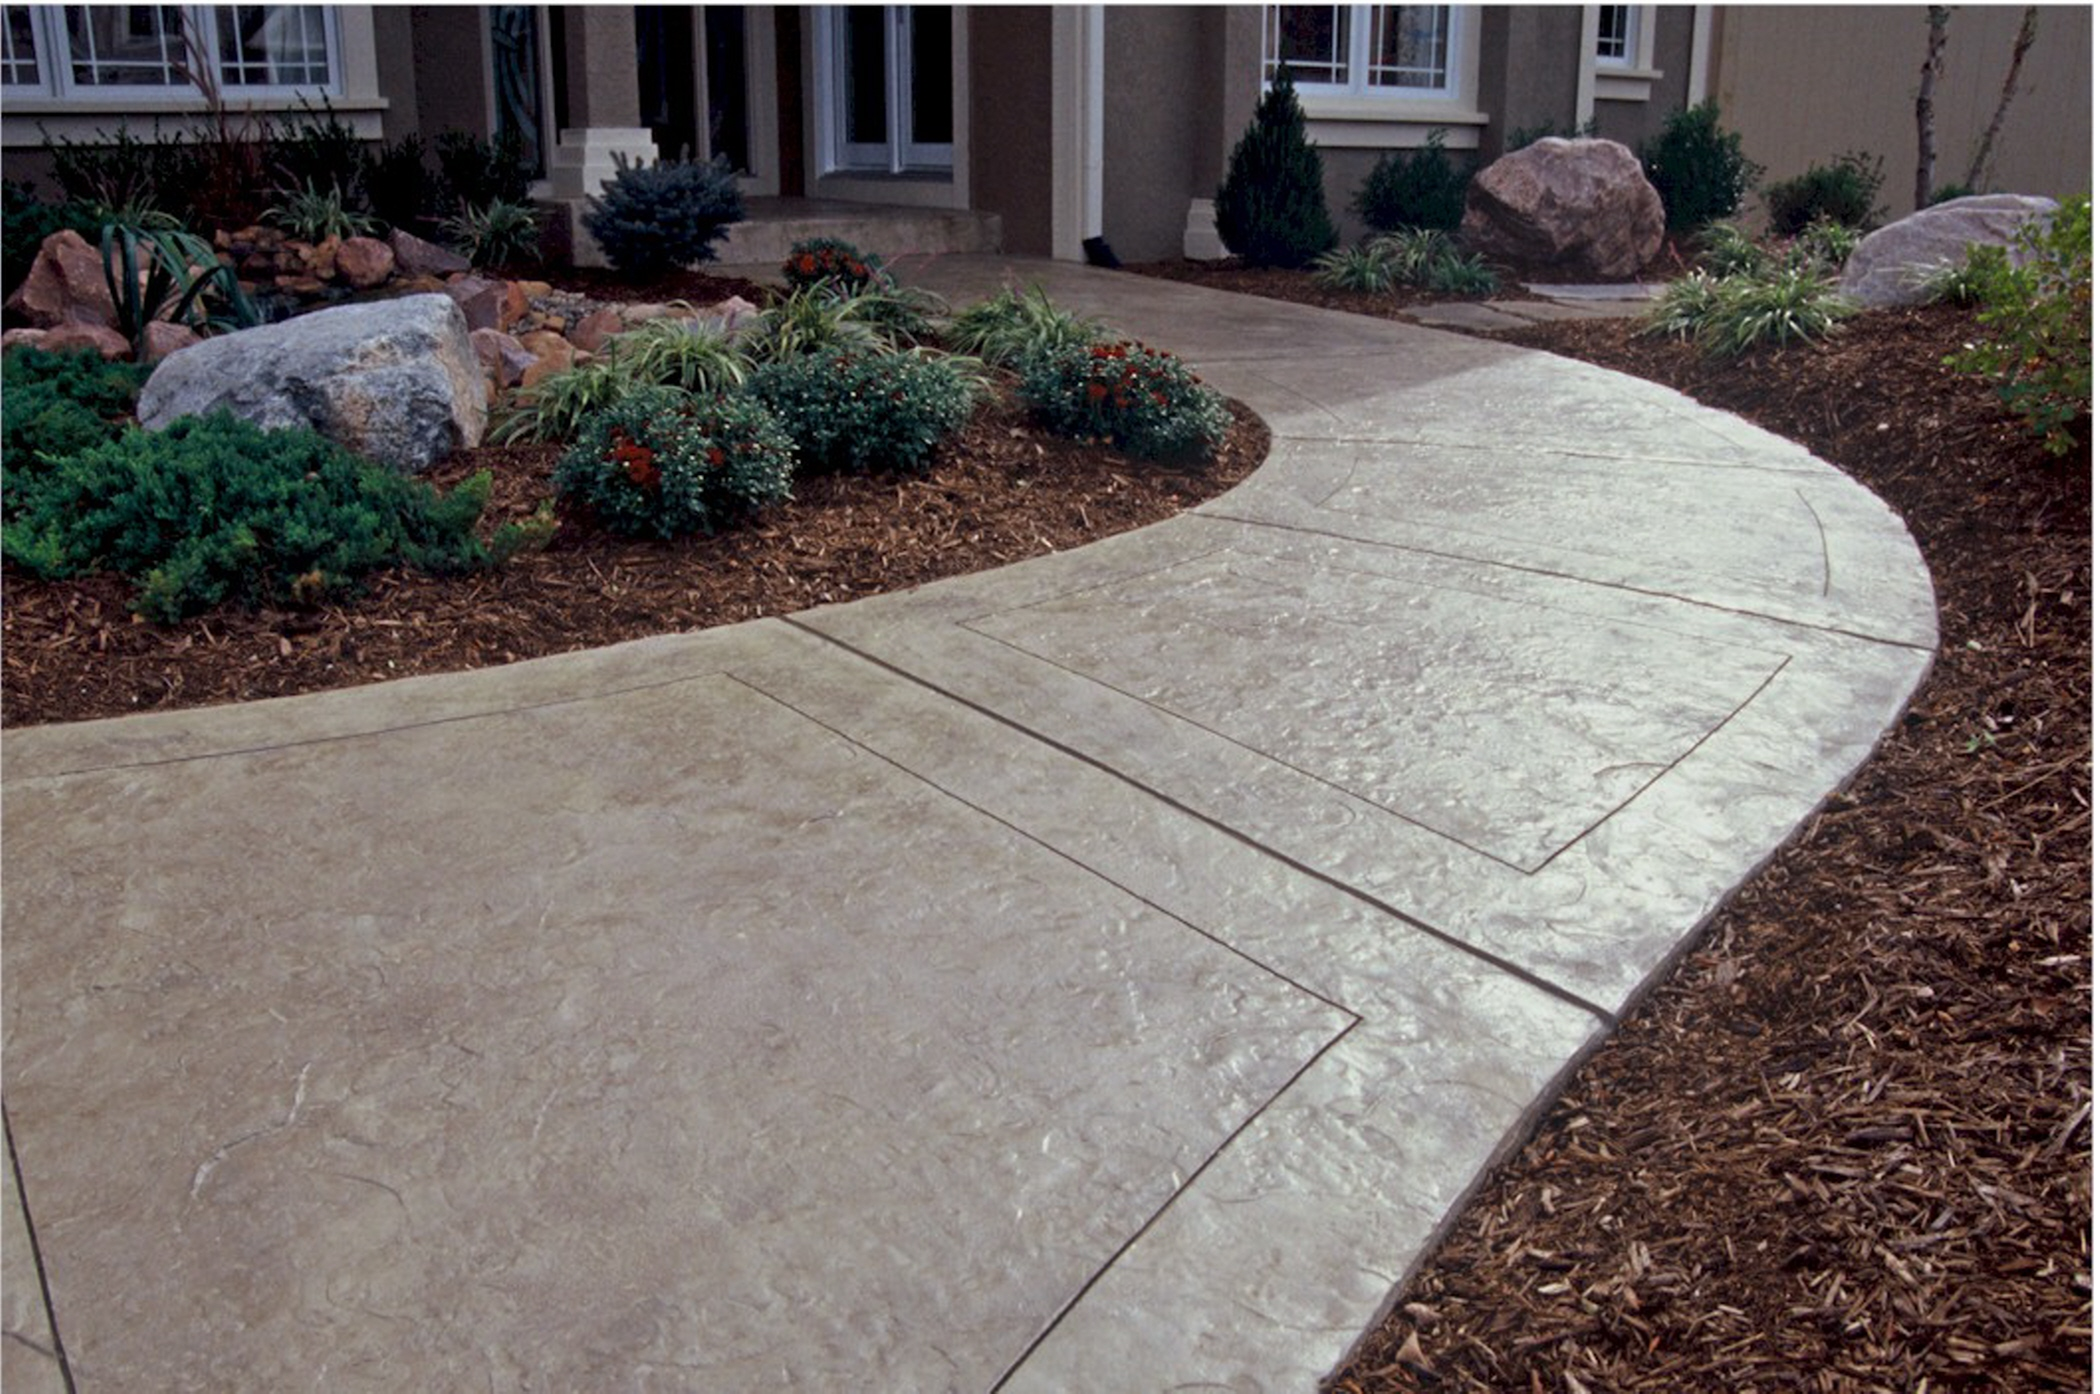 Concrete driveways in maryland for Cement driveway ideas